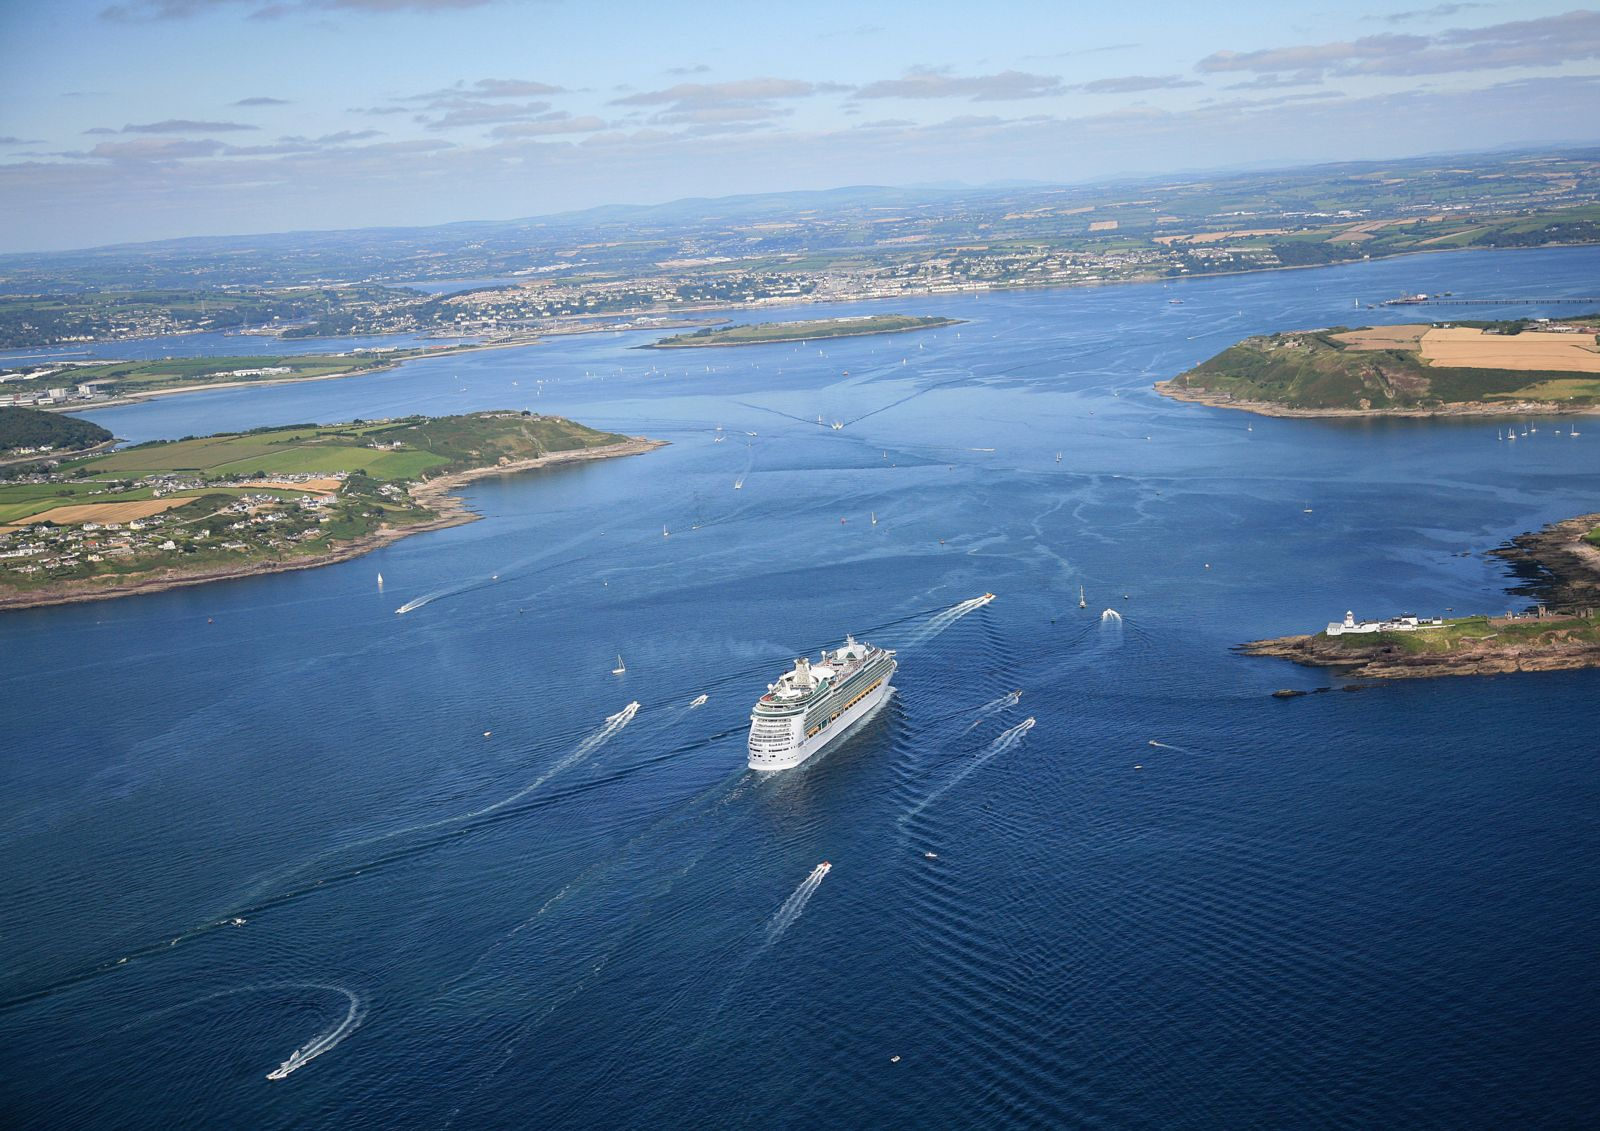 Aerial view of Cork Harbour